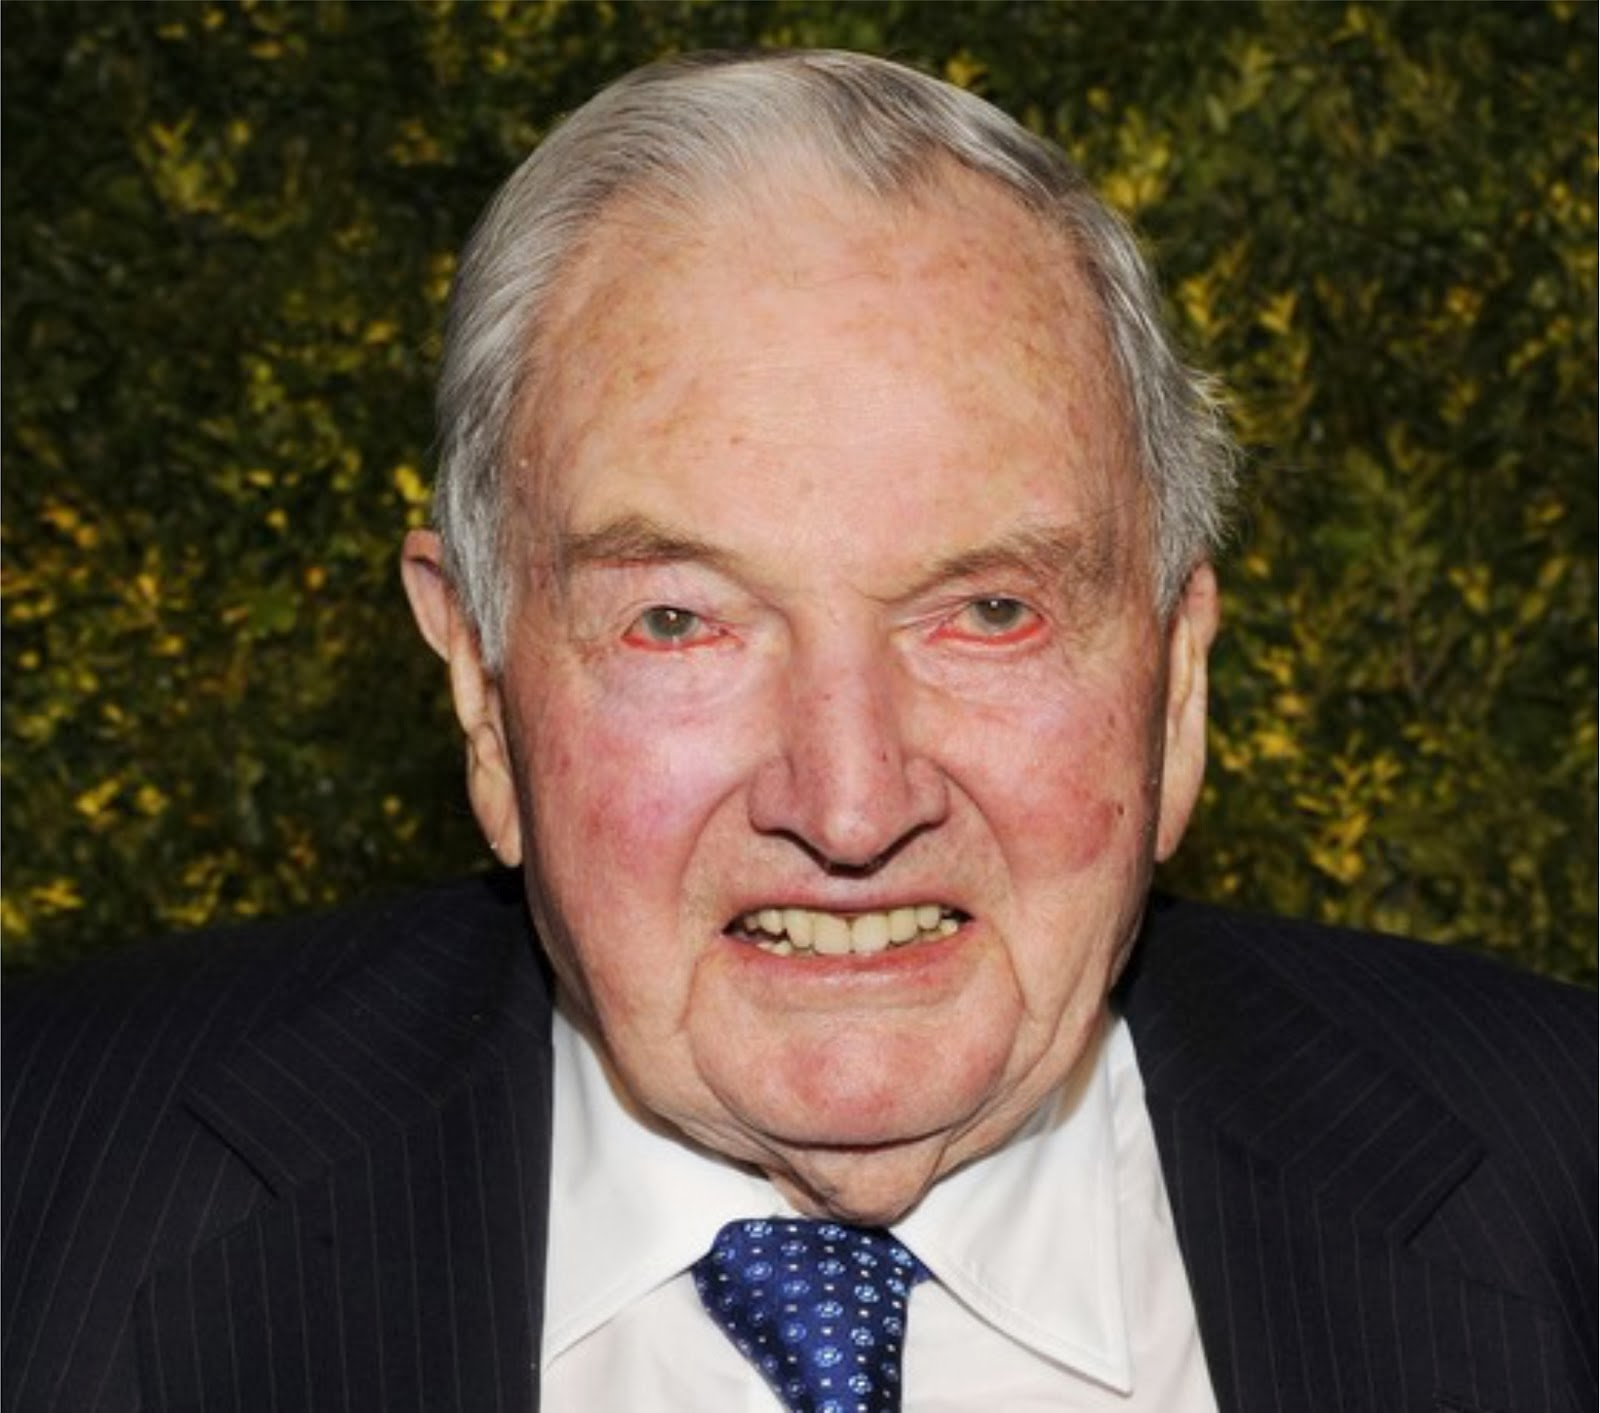 David-Rockefeller.-Born-1915.-US-Nazi-continuum.-1ab.